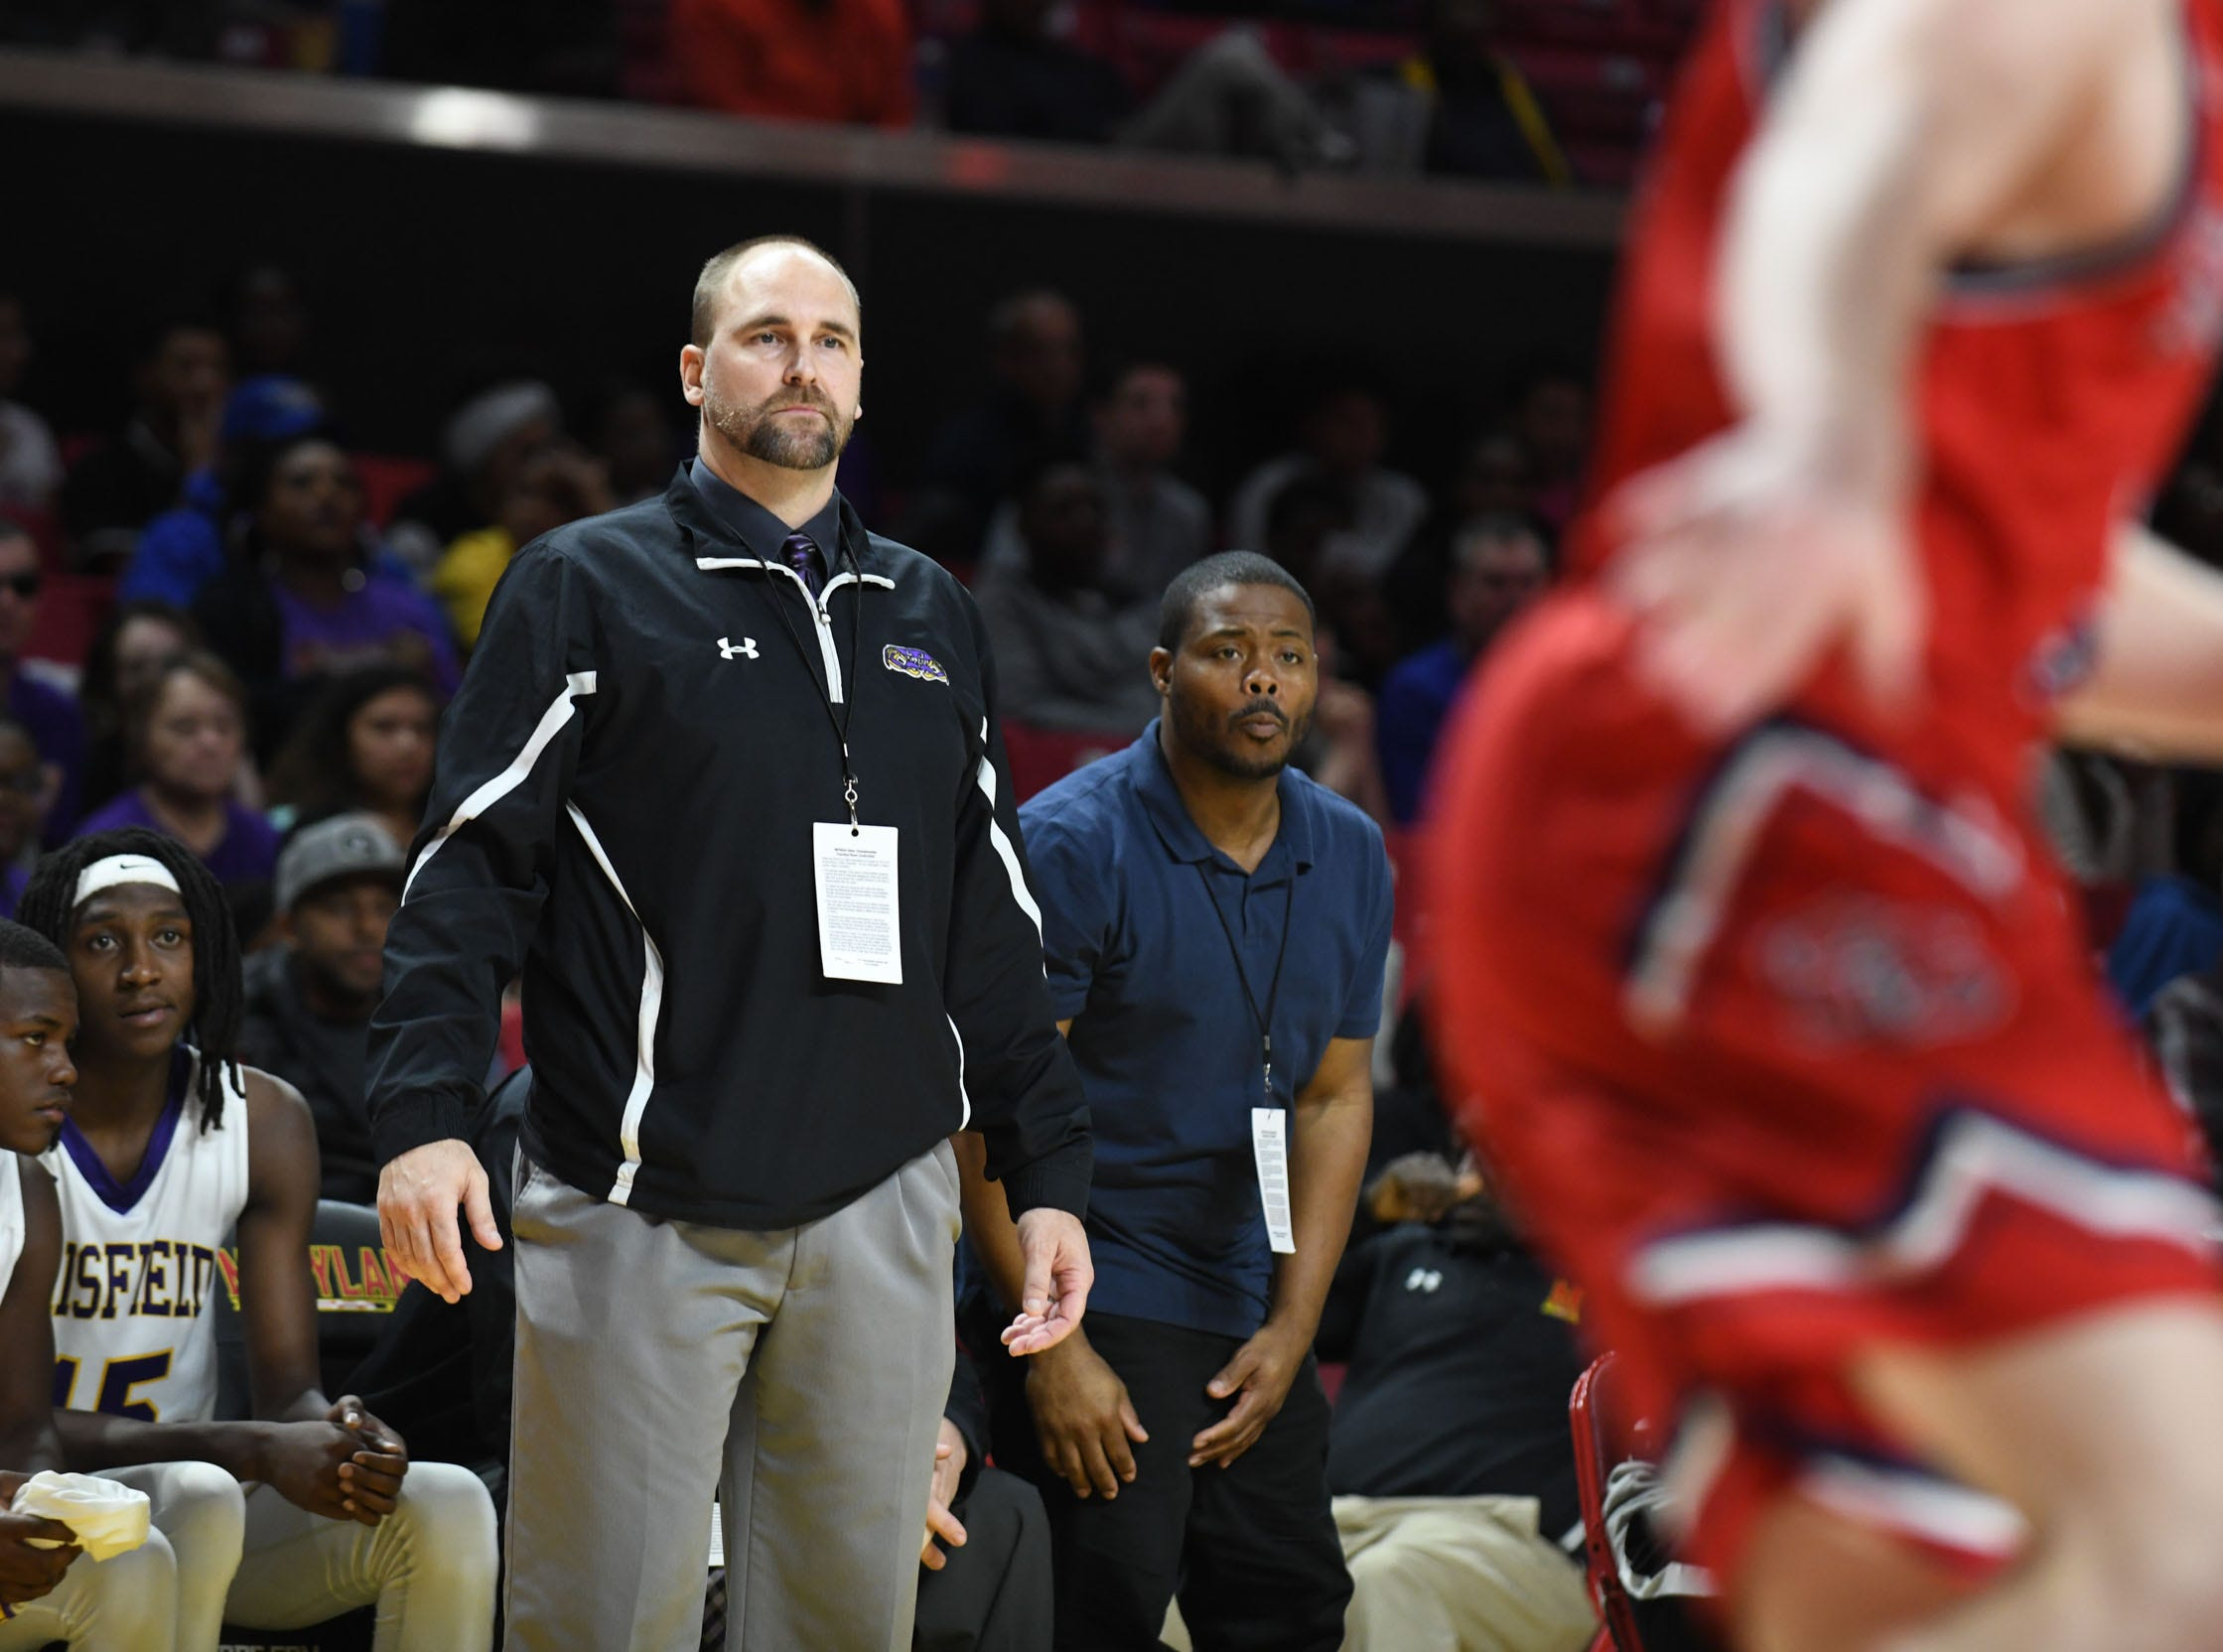 Crisfield's Head Coach David Arnold during the game against Southern-Garrett during the MPSSAA State Championships at the Xfinity Center in College Park, Md. on Friday, March 15, 2019.